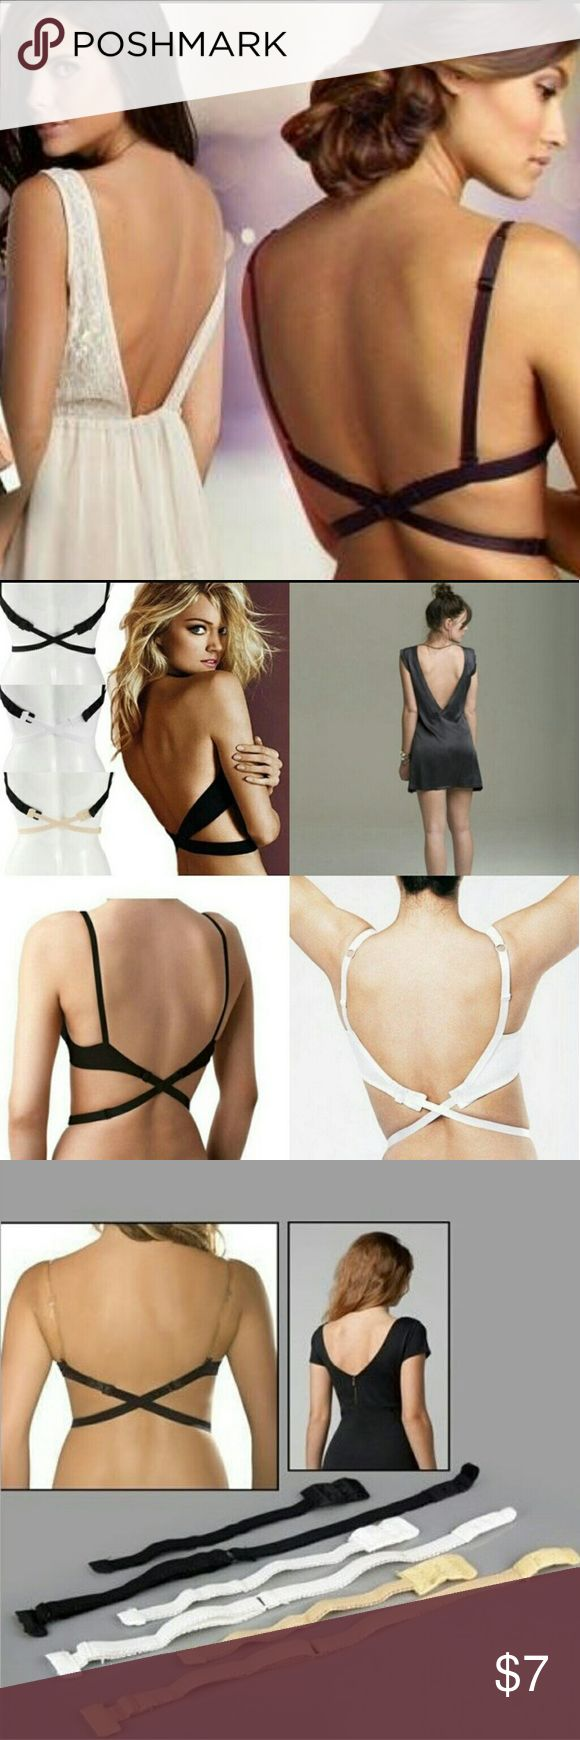 Low Back Backless Bra Strap Extender A perfect solution for your low back tops and summer dress.  Fully adjustable bra adapter strap, simply attach it to the bra, cross over behind and fasten the strap in the front.  Can be attached to any bra and fully adjustable  Condition: 100% Brand New  Available Color: White, Beige, Black.  *** Please leave me comment with your prefer color when ordering. Other